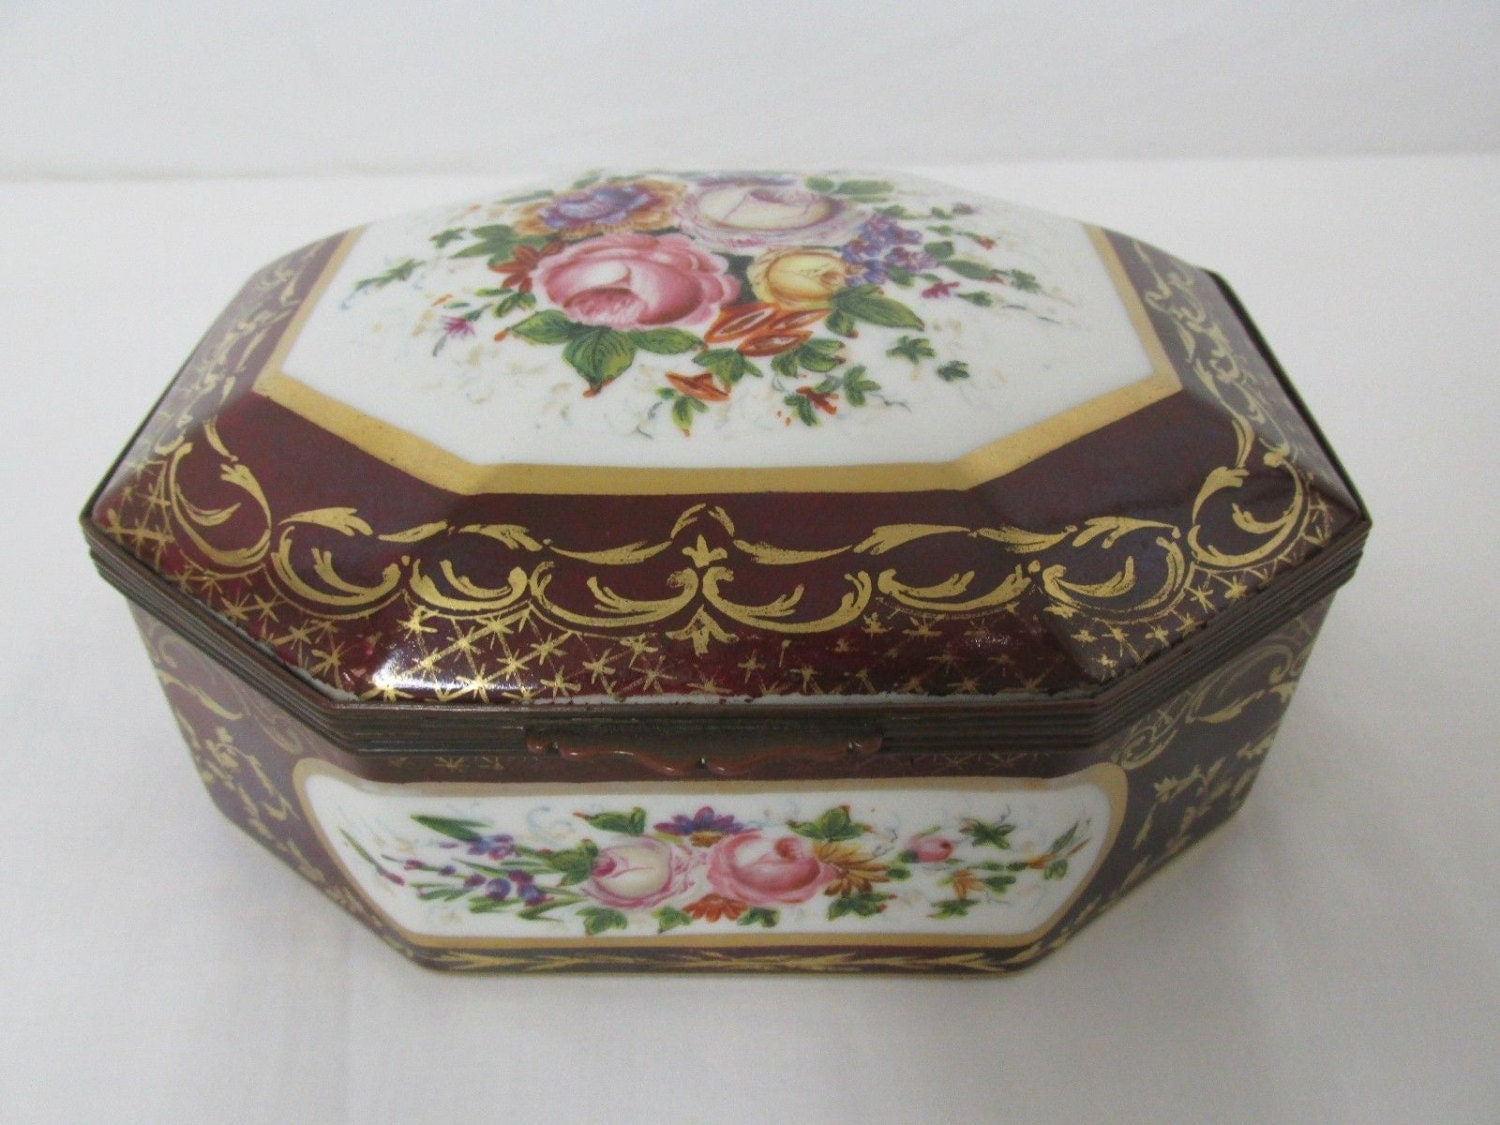 Vintage Limoges Jewelry Box Rose Floral France Maroon Gold |Limoges Jewelry